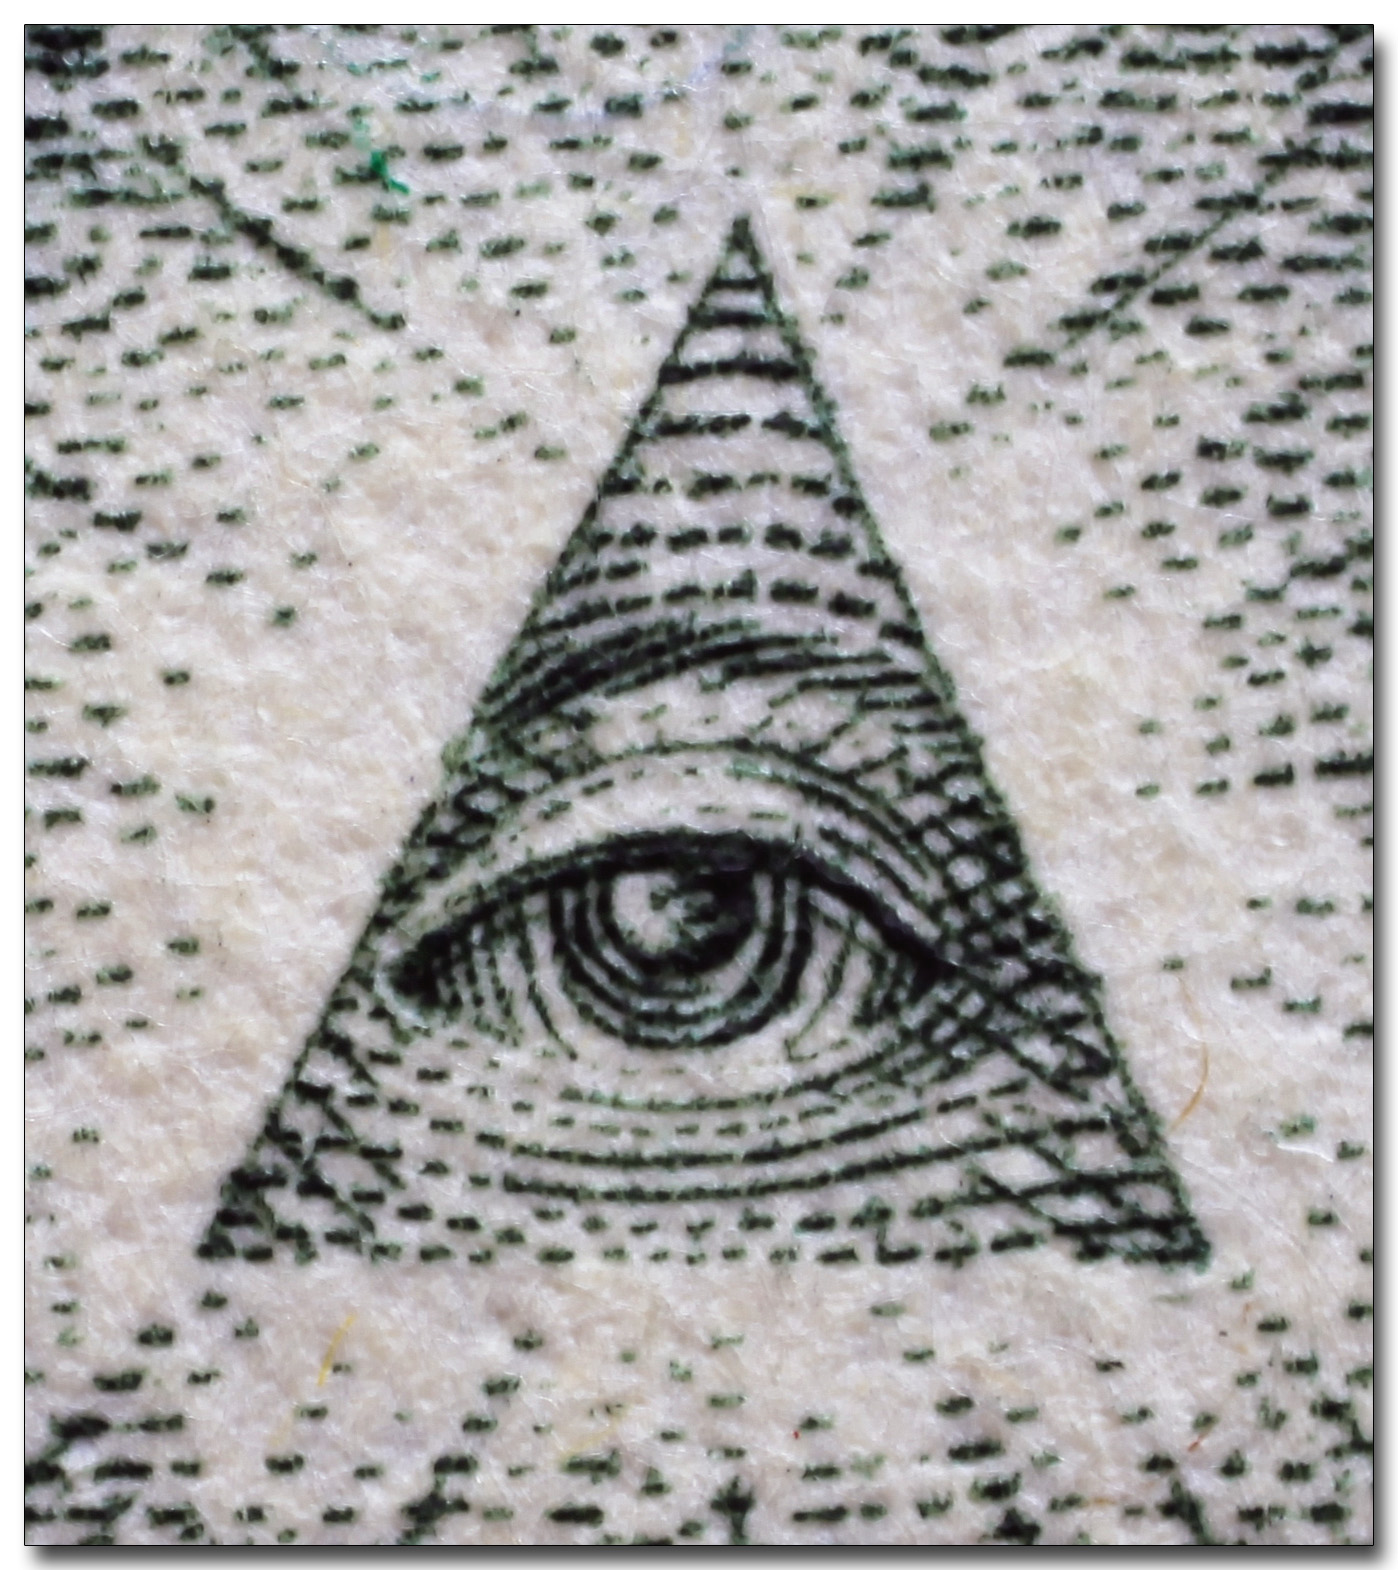 All Seeing Eye Illuminati